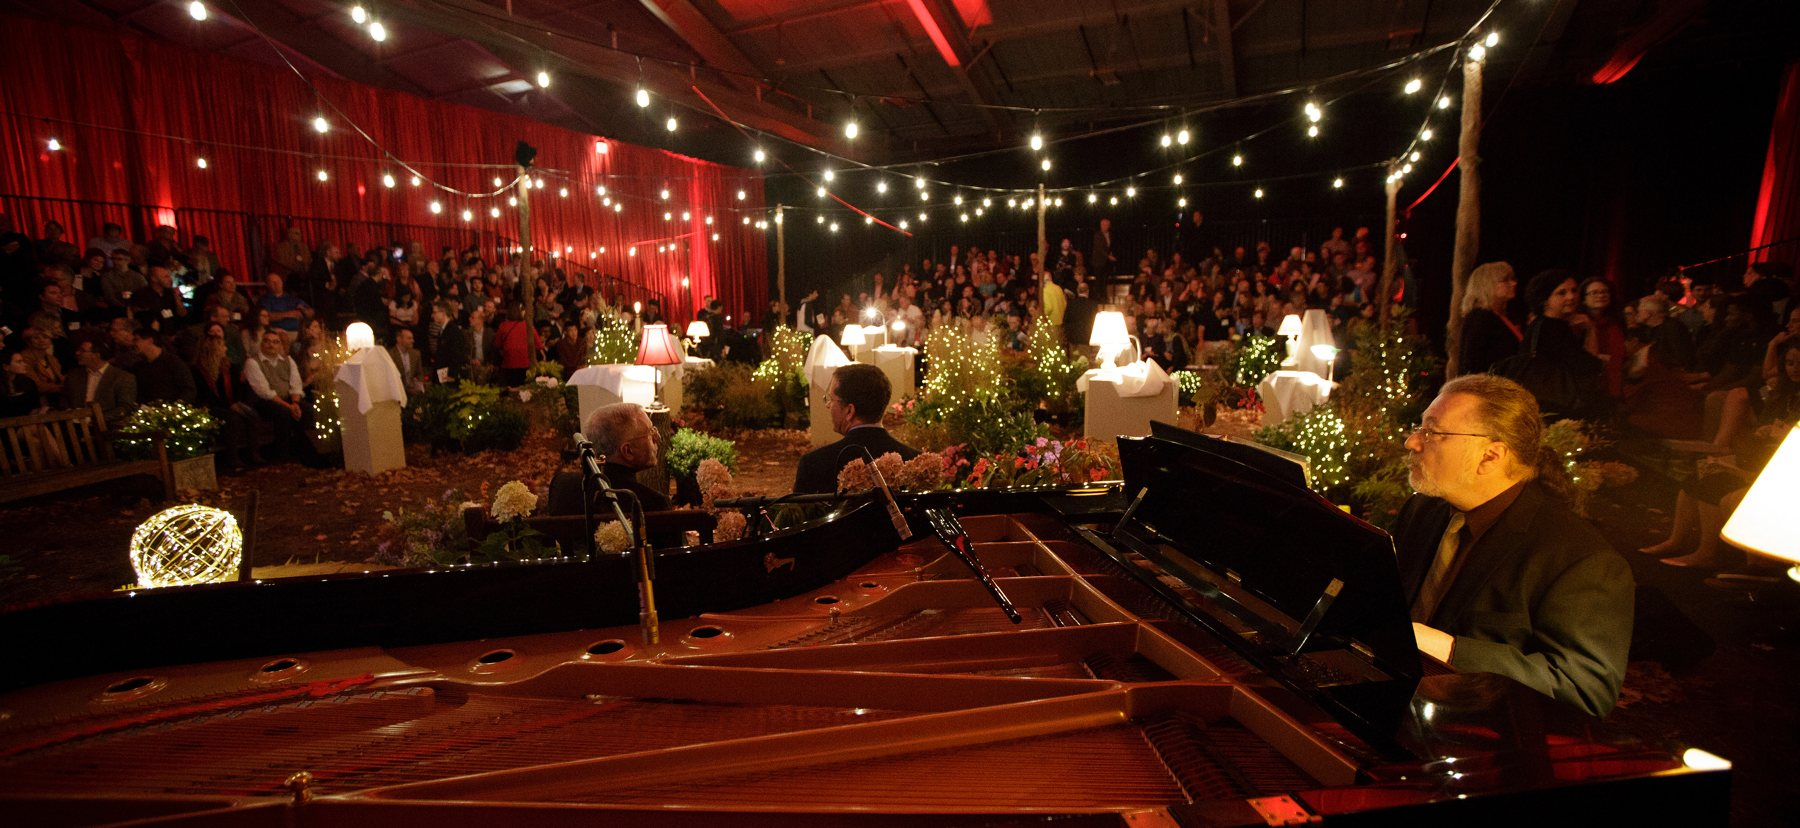 A man in the foreground plays piano in front of a celebration gala